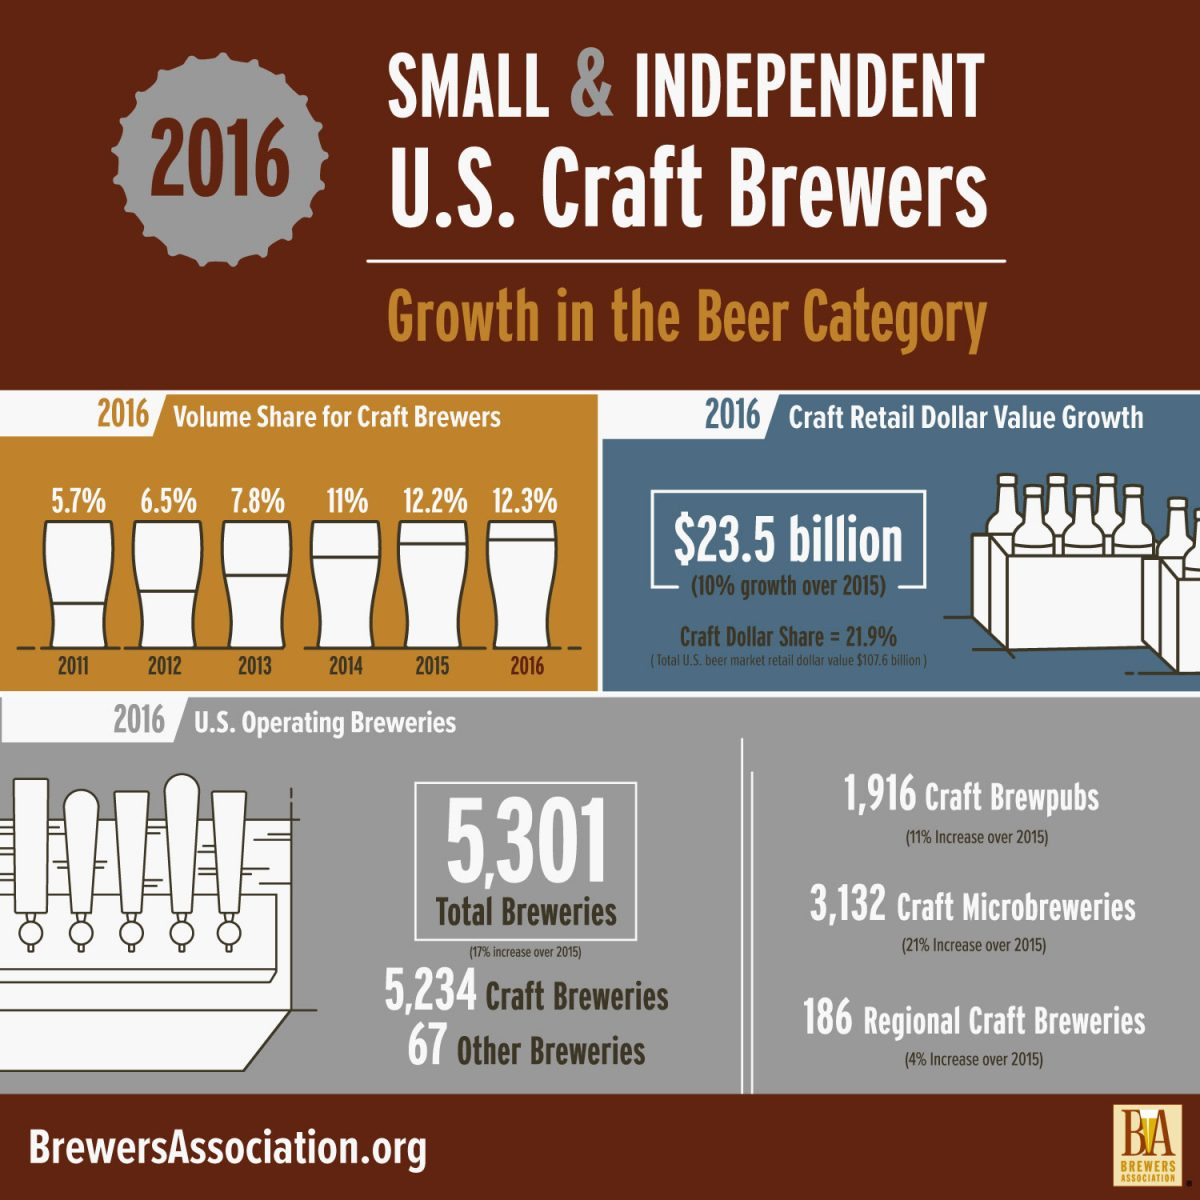 Craft brewing growth statistics for 2016 released by the for Craft beer vs microbrew